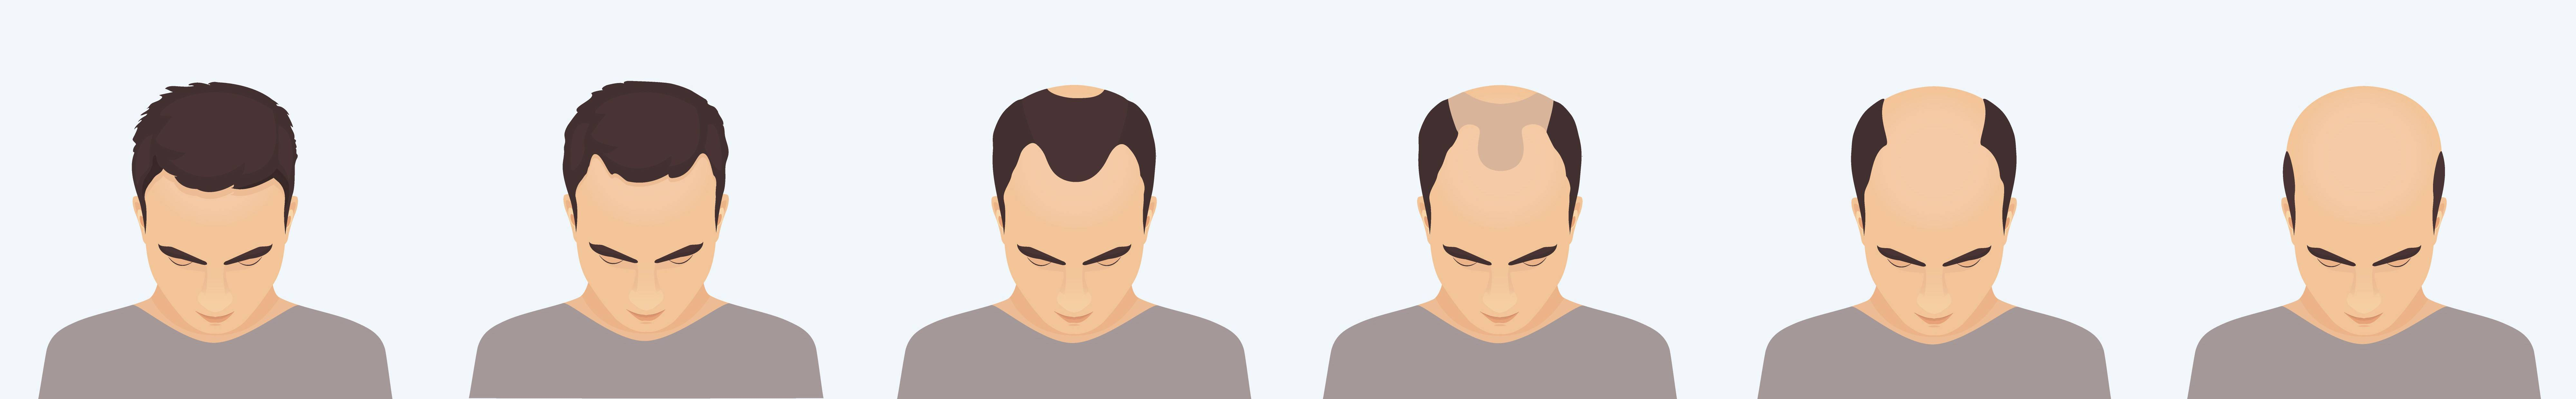 Stage of hair loss